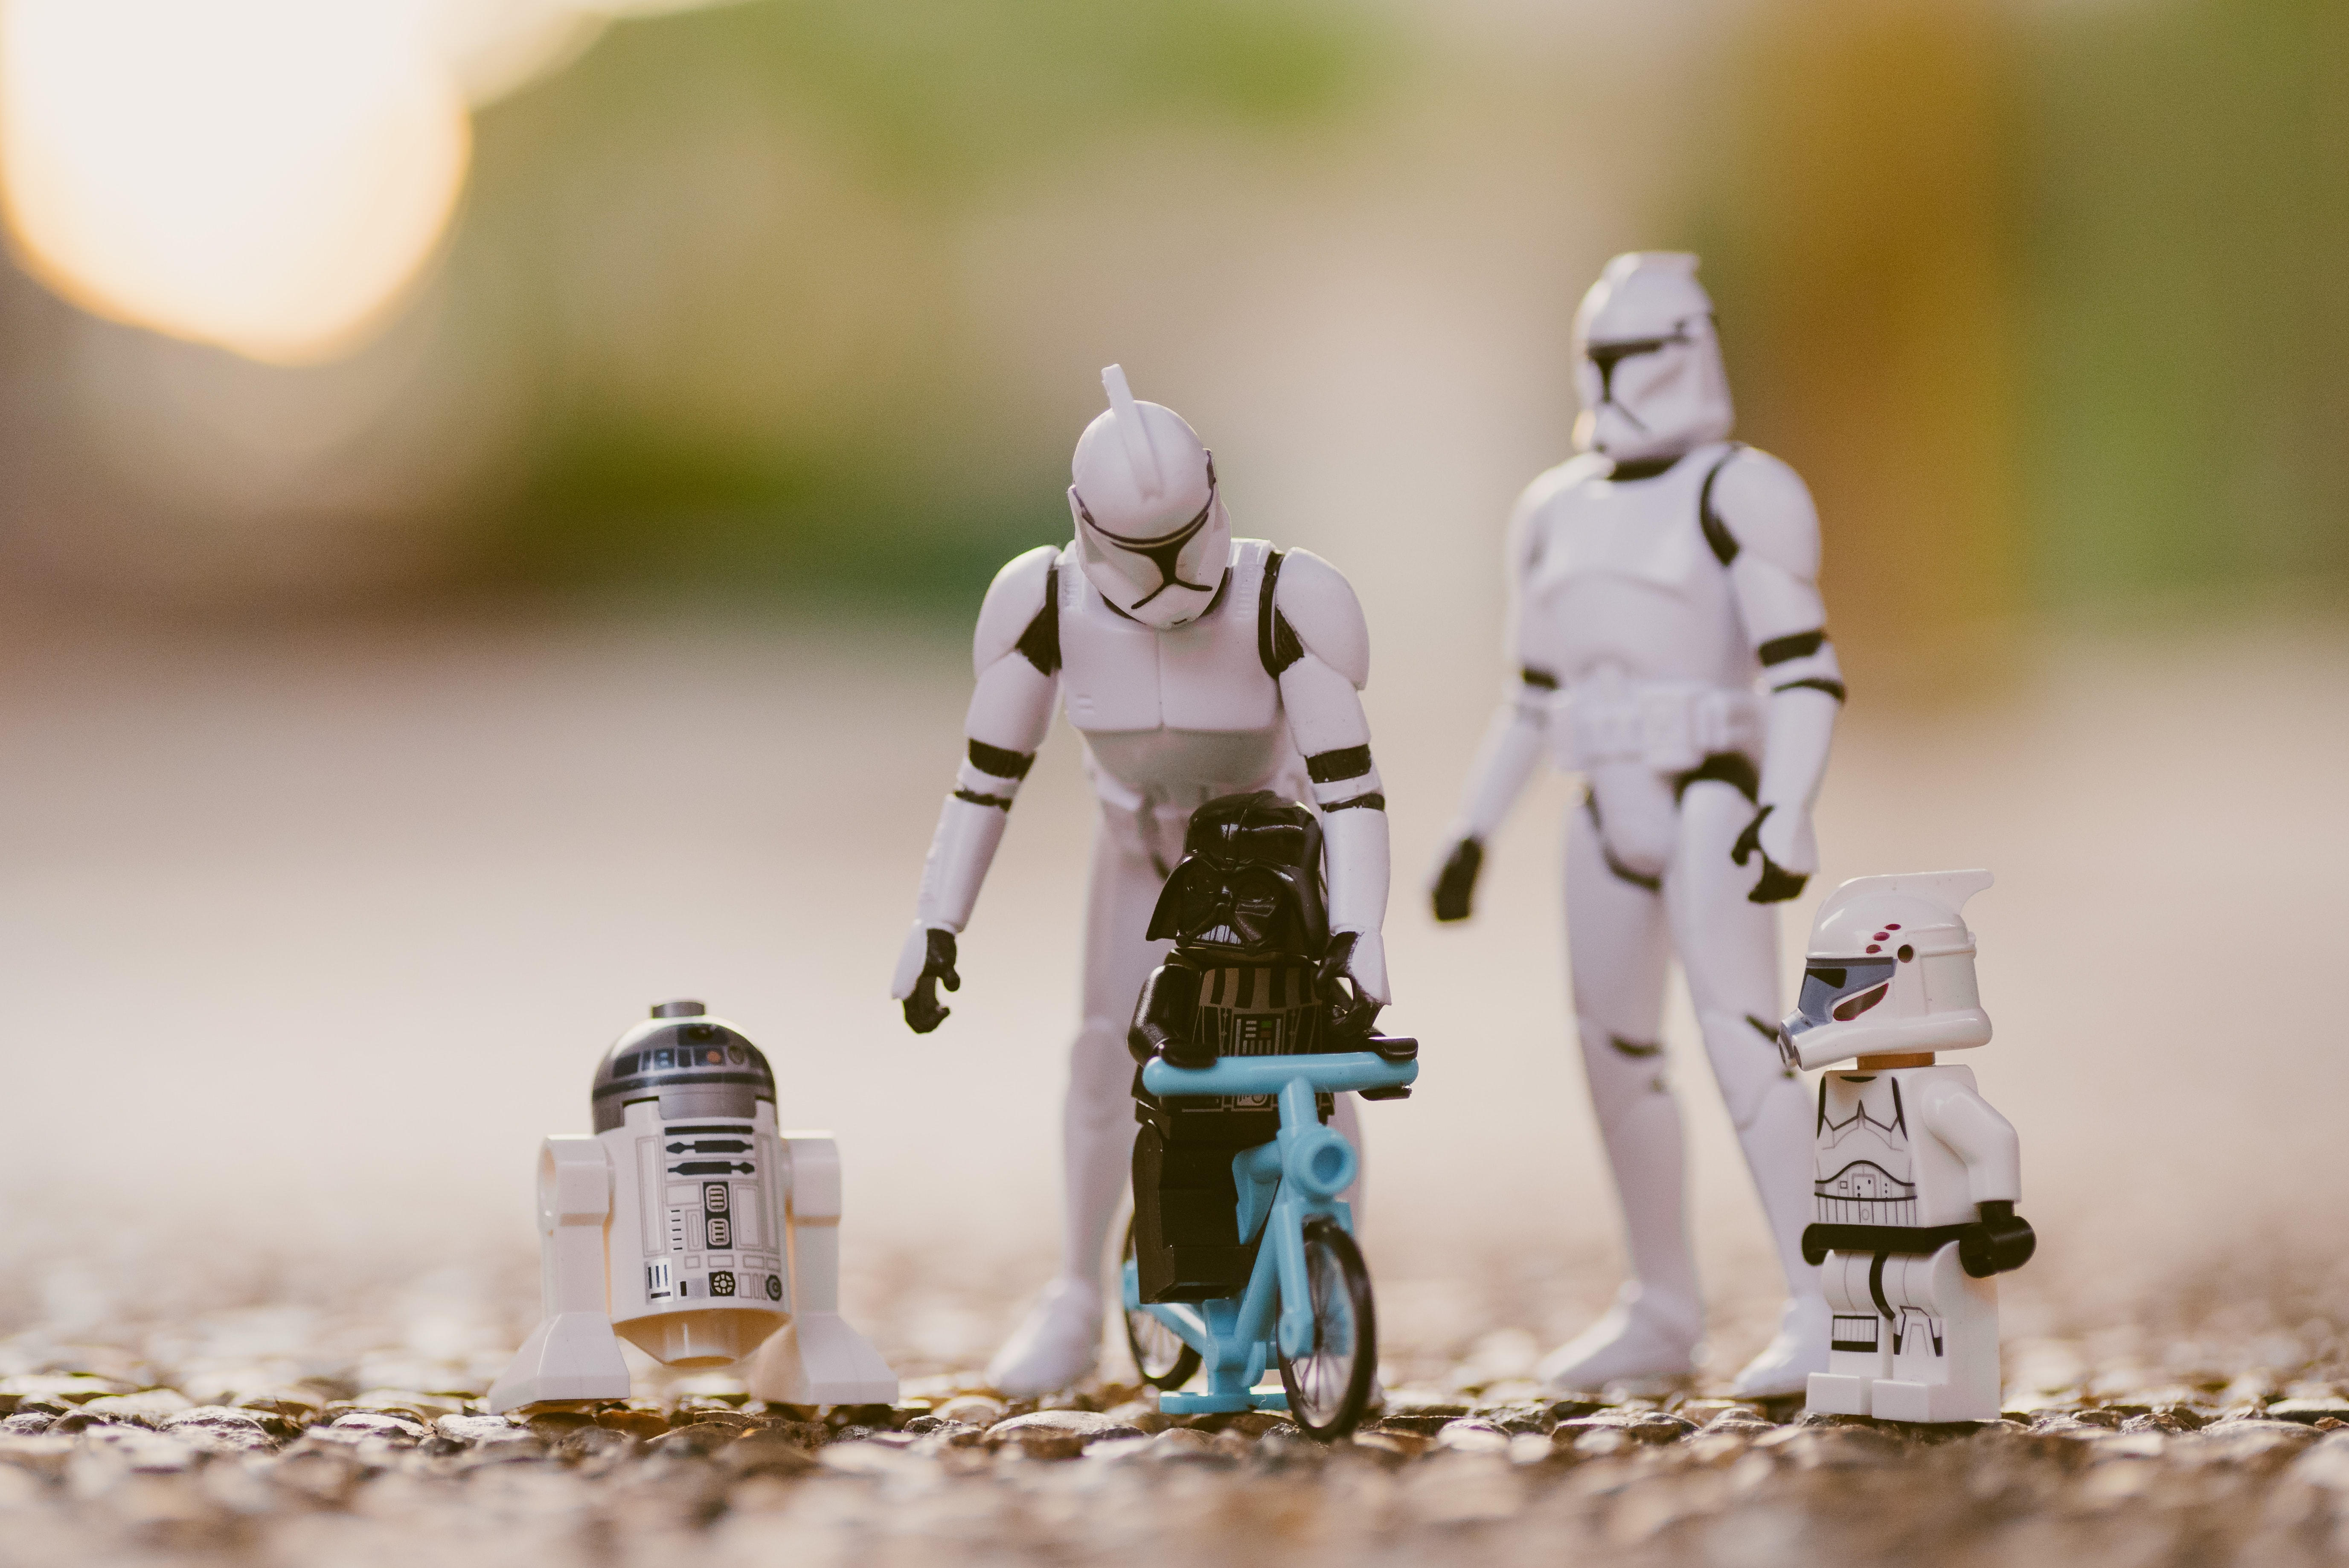 selective focus photography of Star Wars Stormtropper, R2-D2, and Darth Vader toys